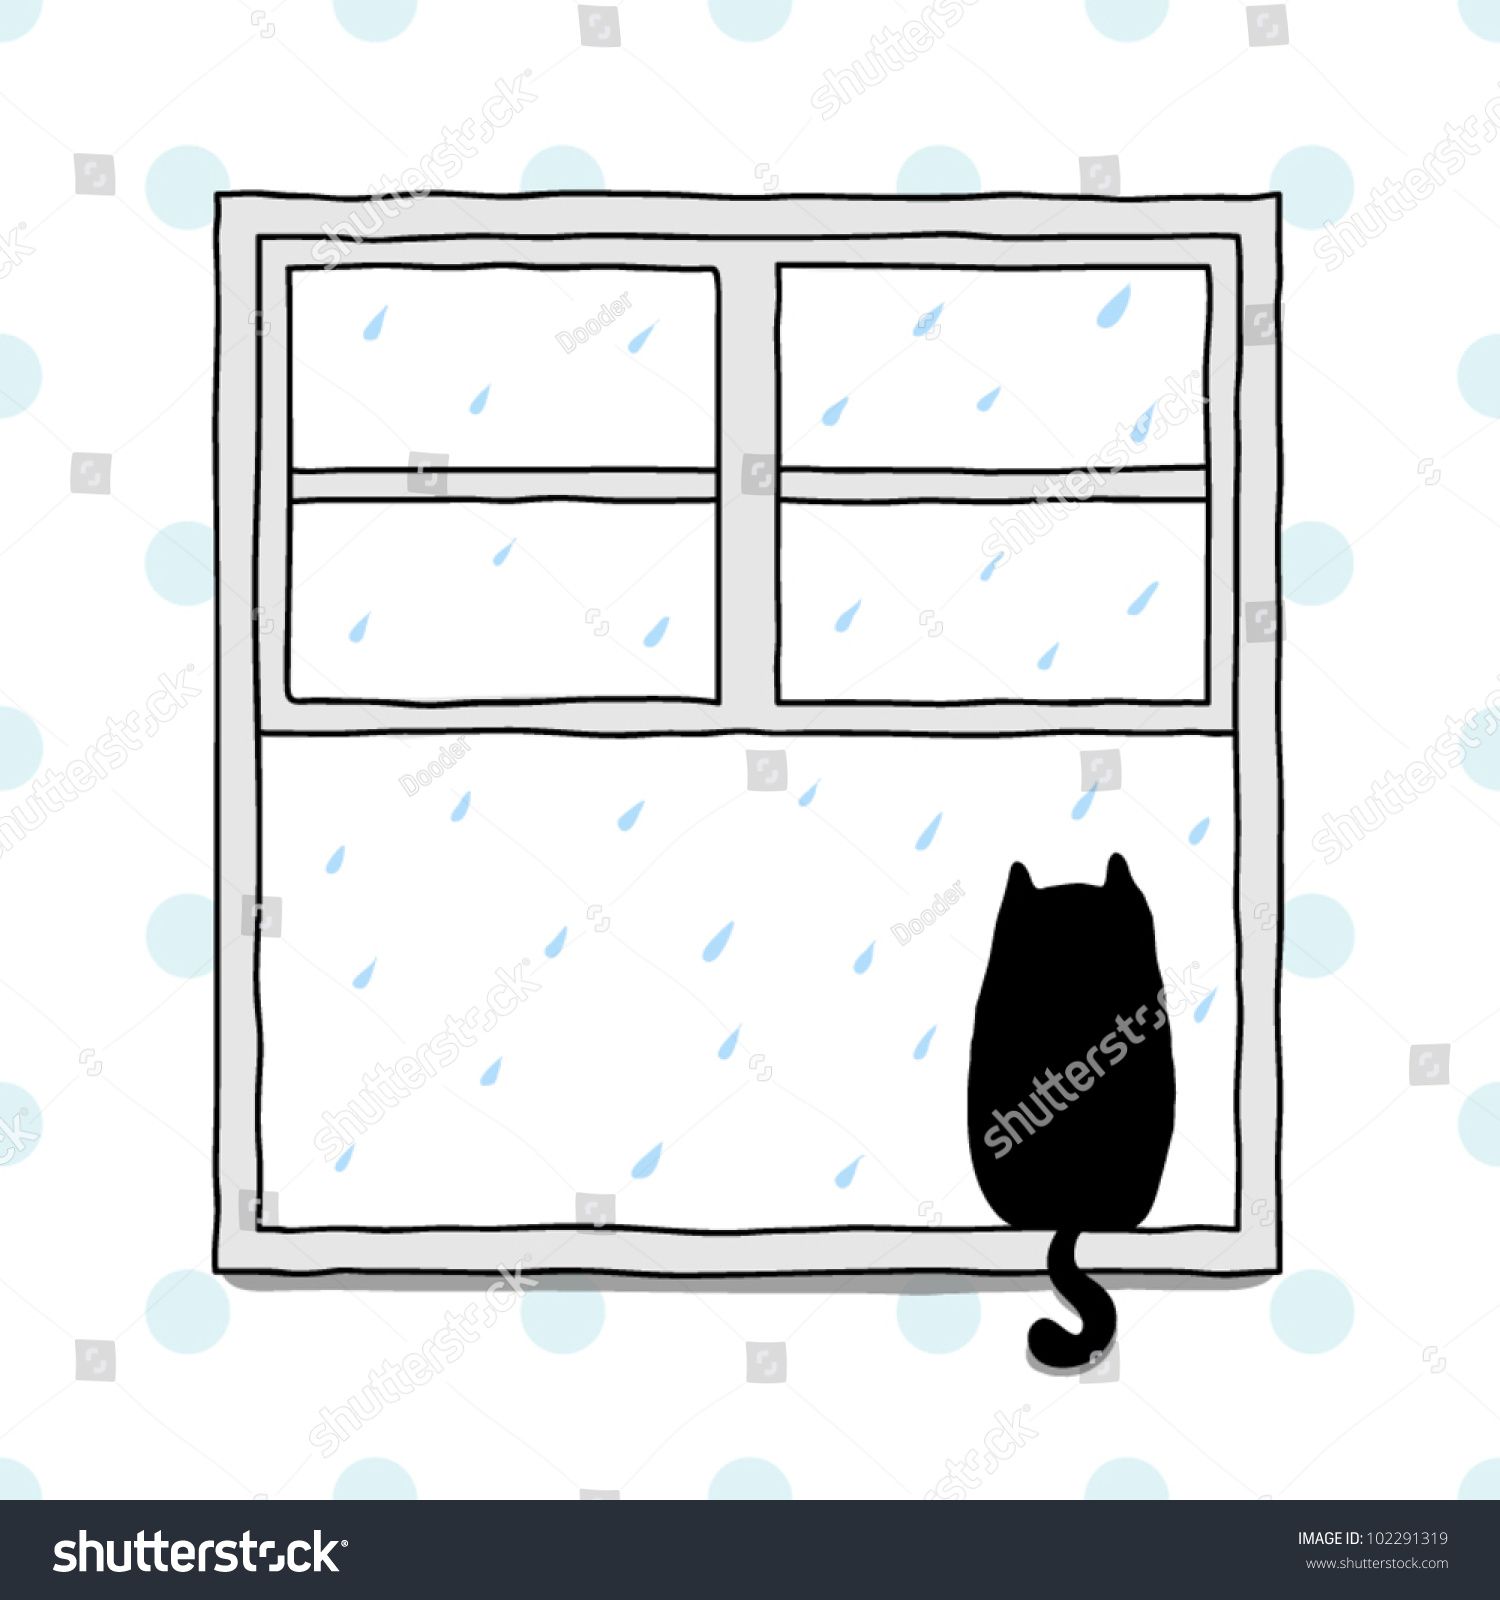 Cartoon kitchen with cabinets and window vector art illustration -  Vectors Illustrations Footage Music Cat Looking Out Of A Window At The Rain